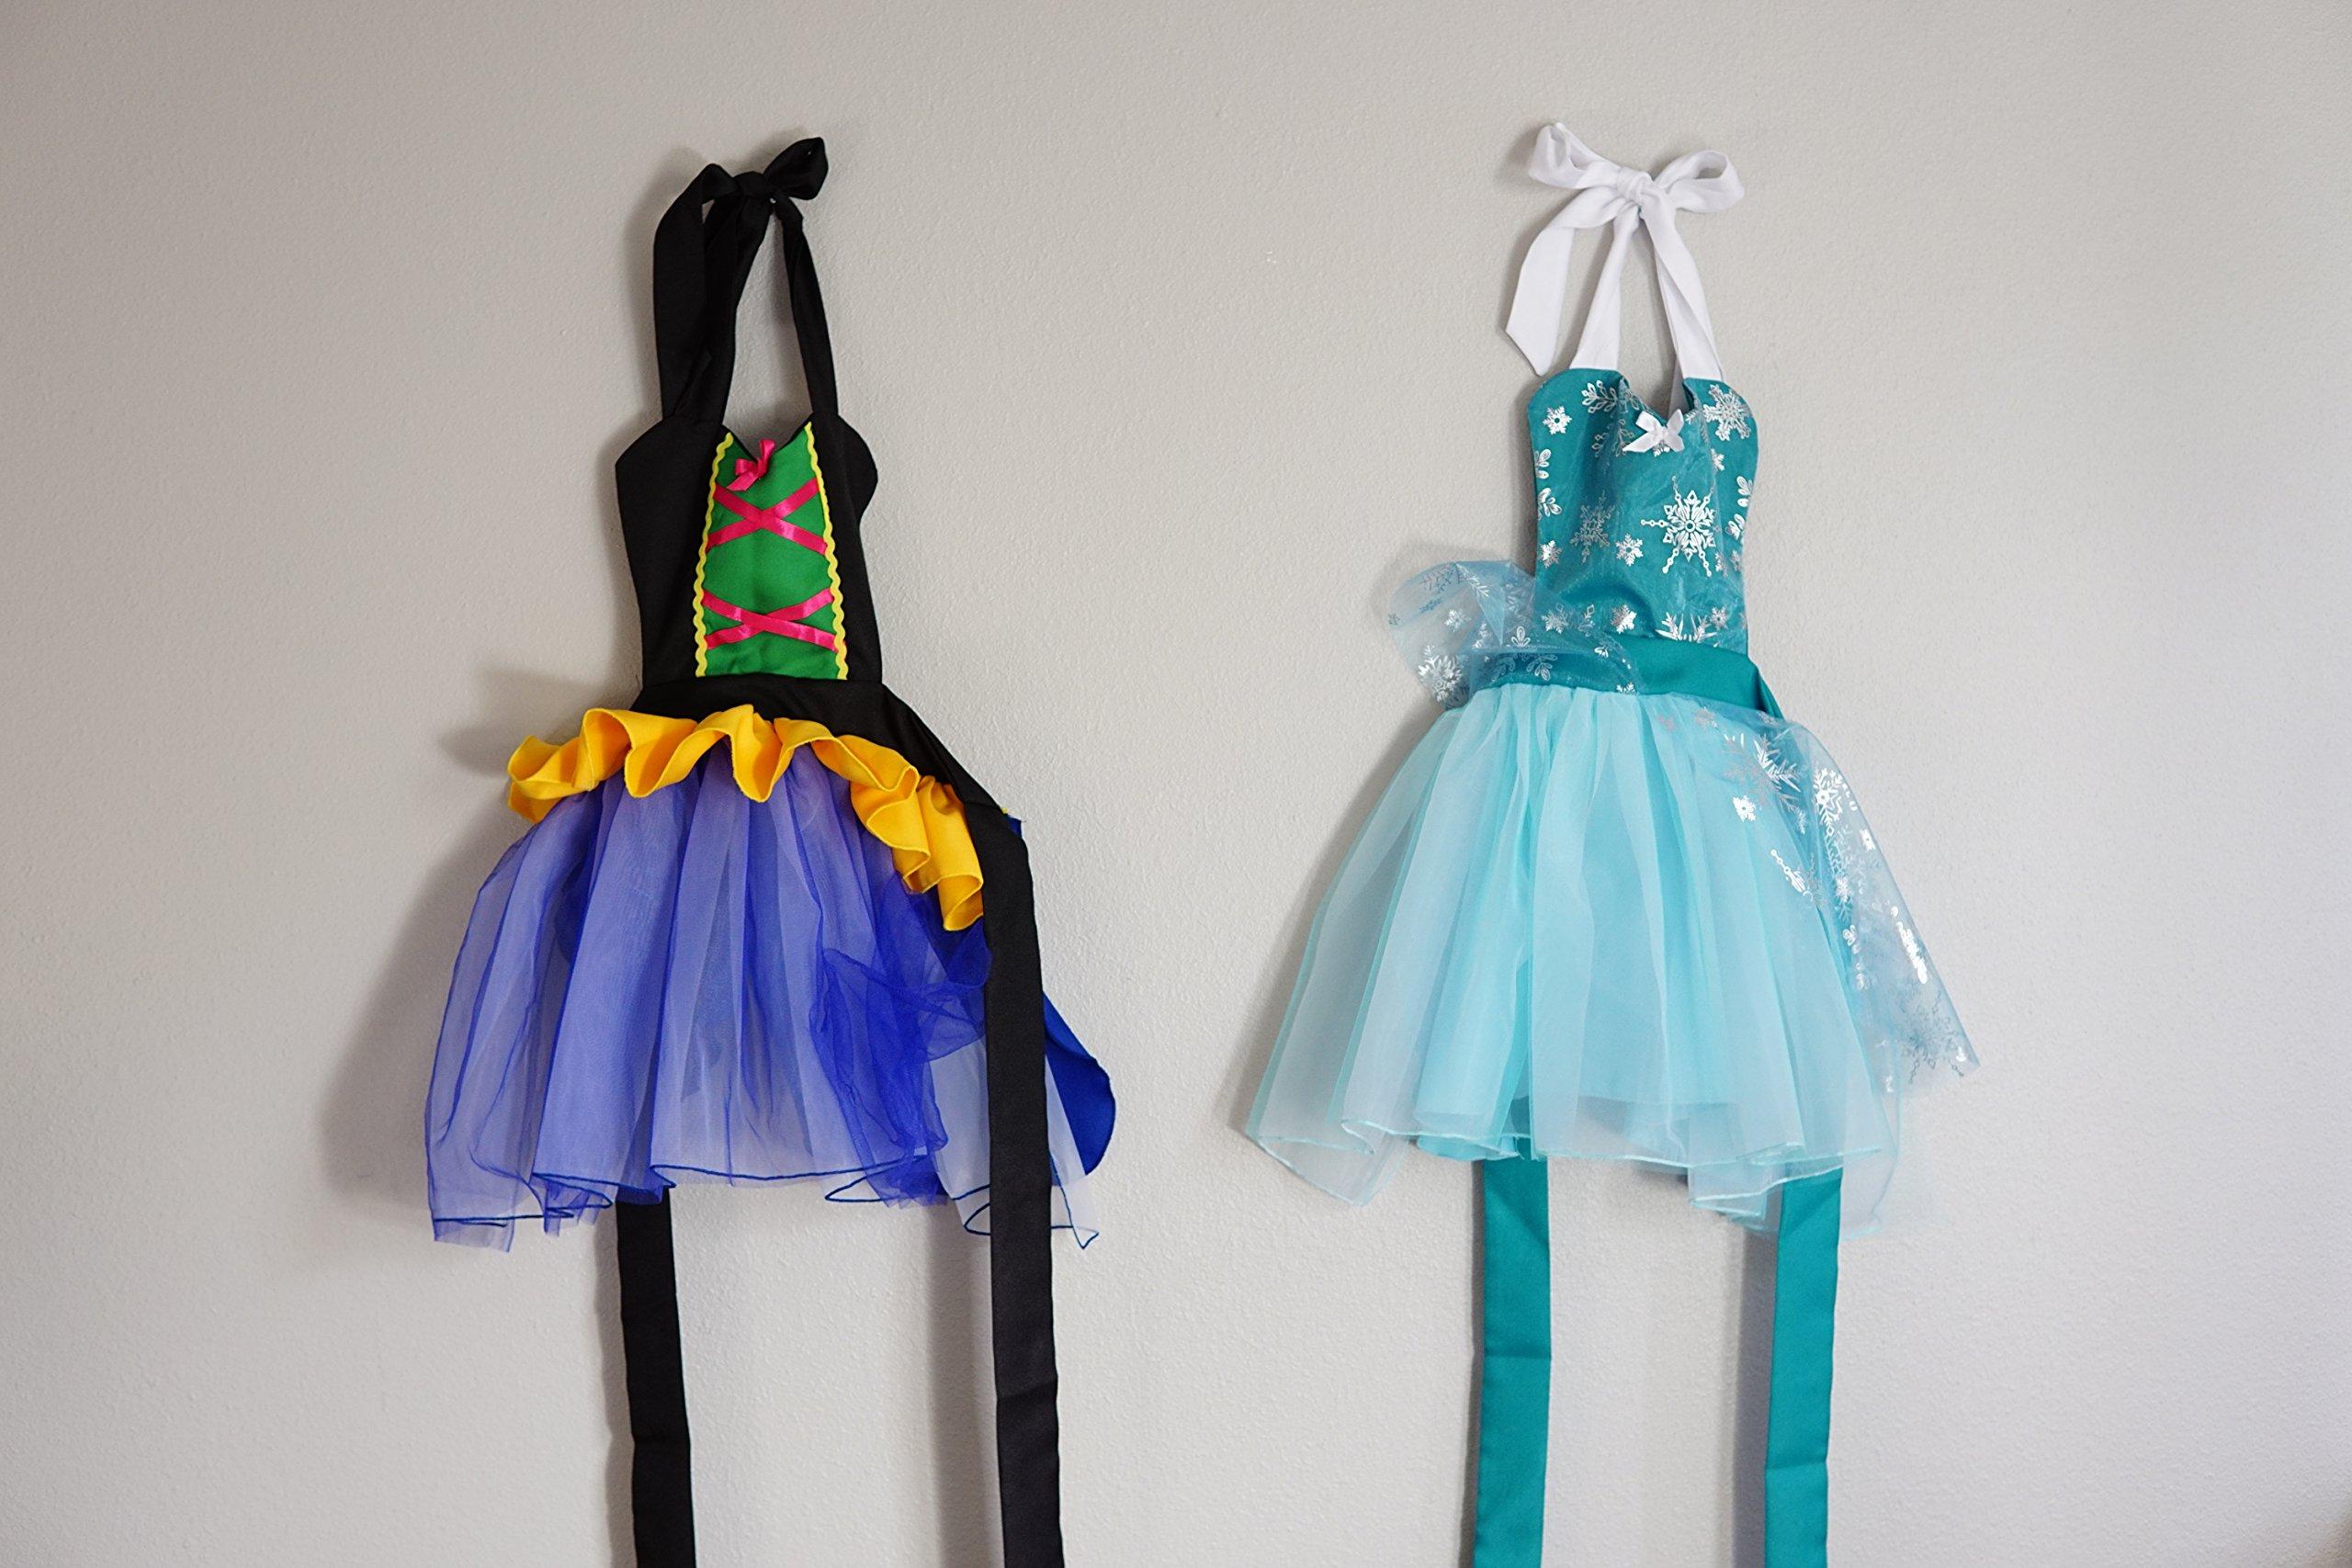 SET OF 2 PRINCESS RUFFLE APRONS FOR KIDS 3-5 years old